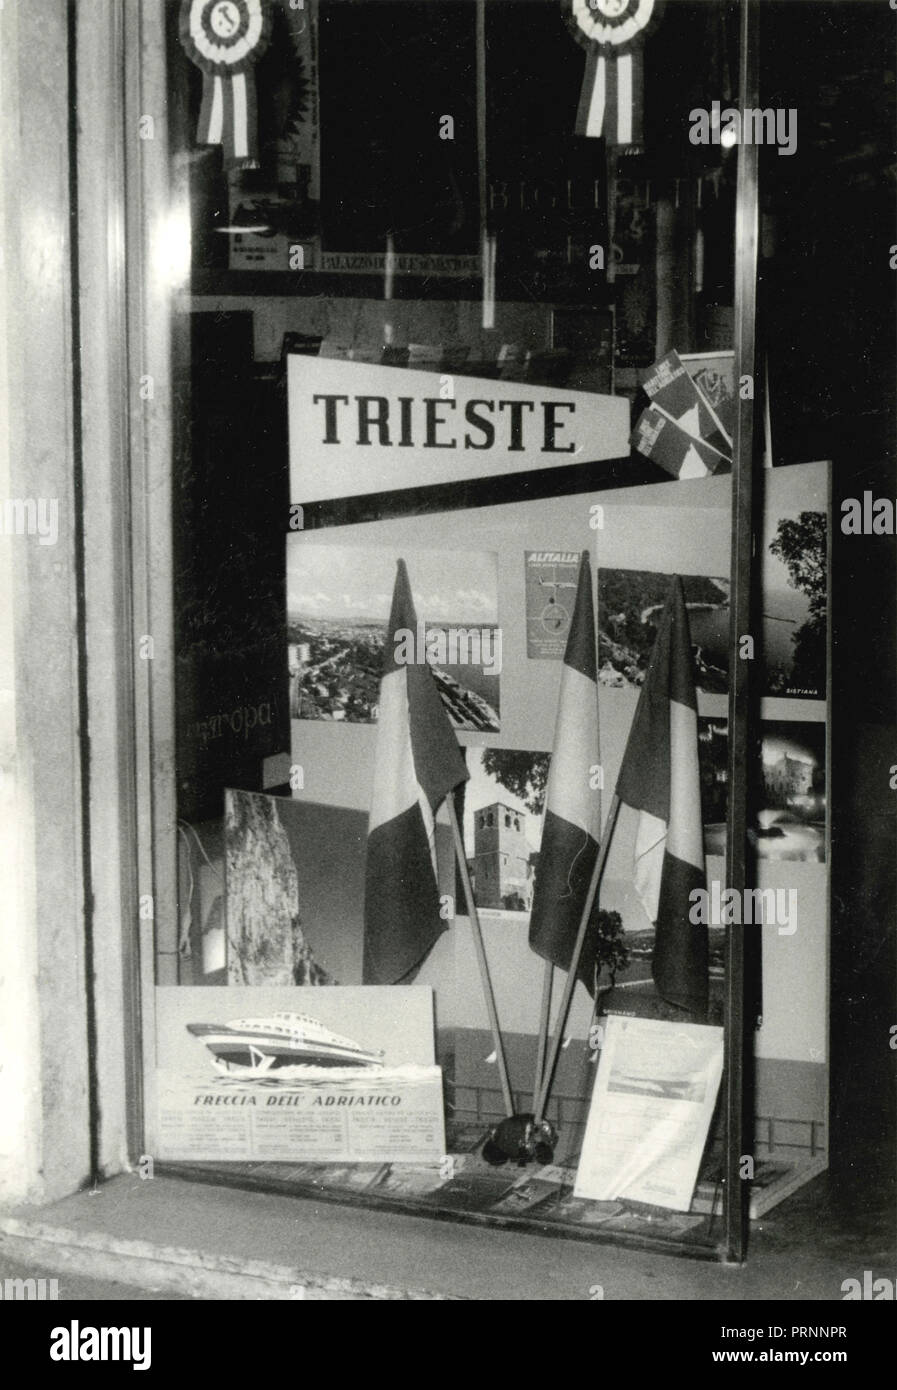 Travel agency advertising the city of Trieste, Italy 1960s - Stock Image